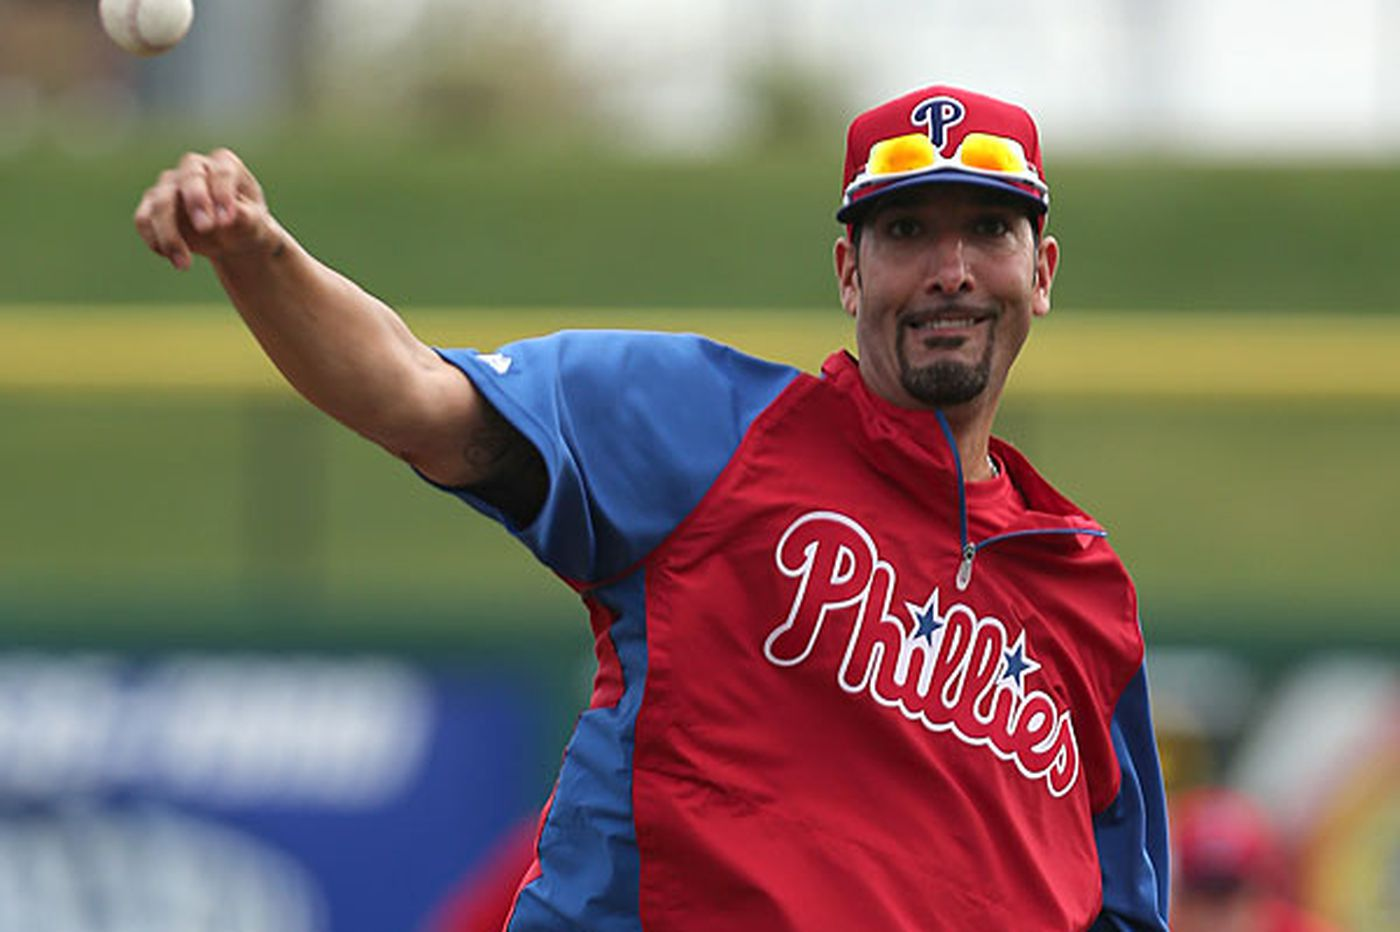 Phillies reliever Adams is pleased with early progress